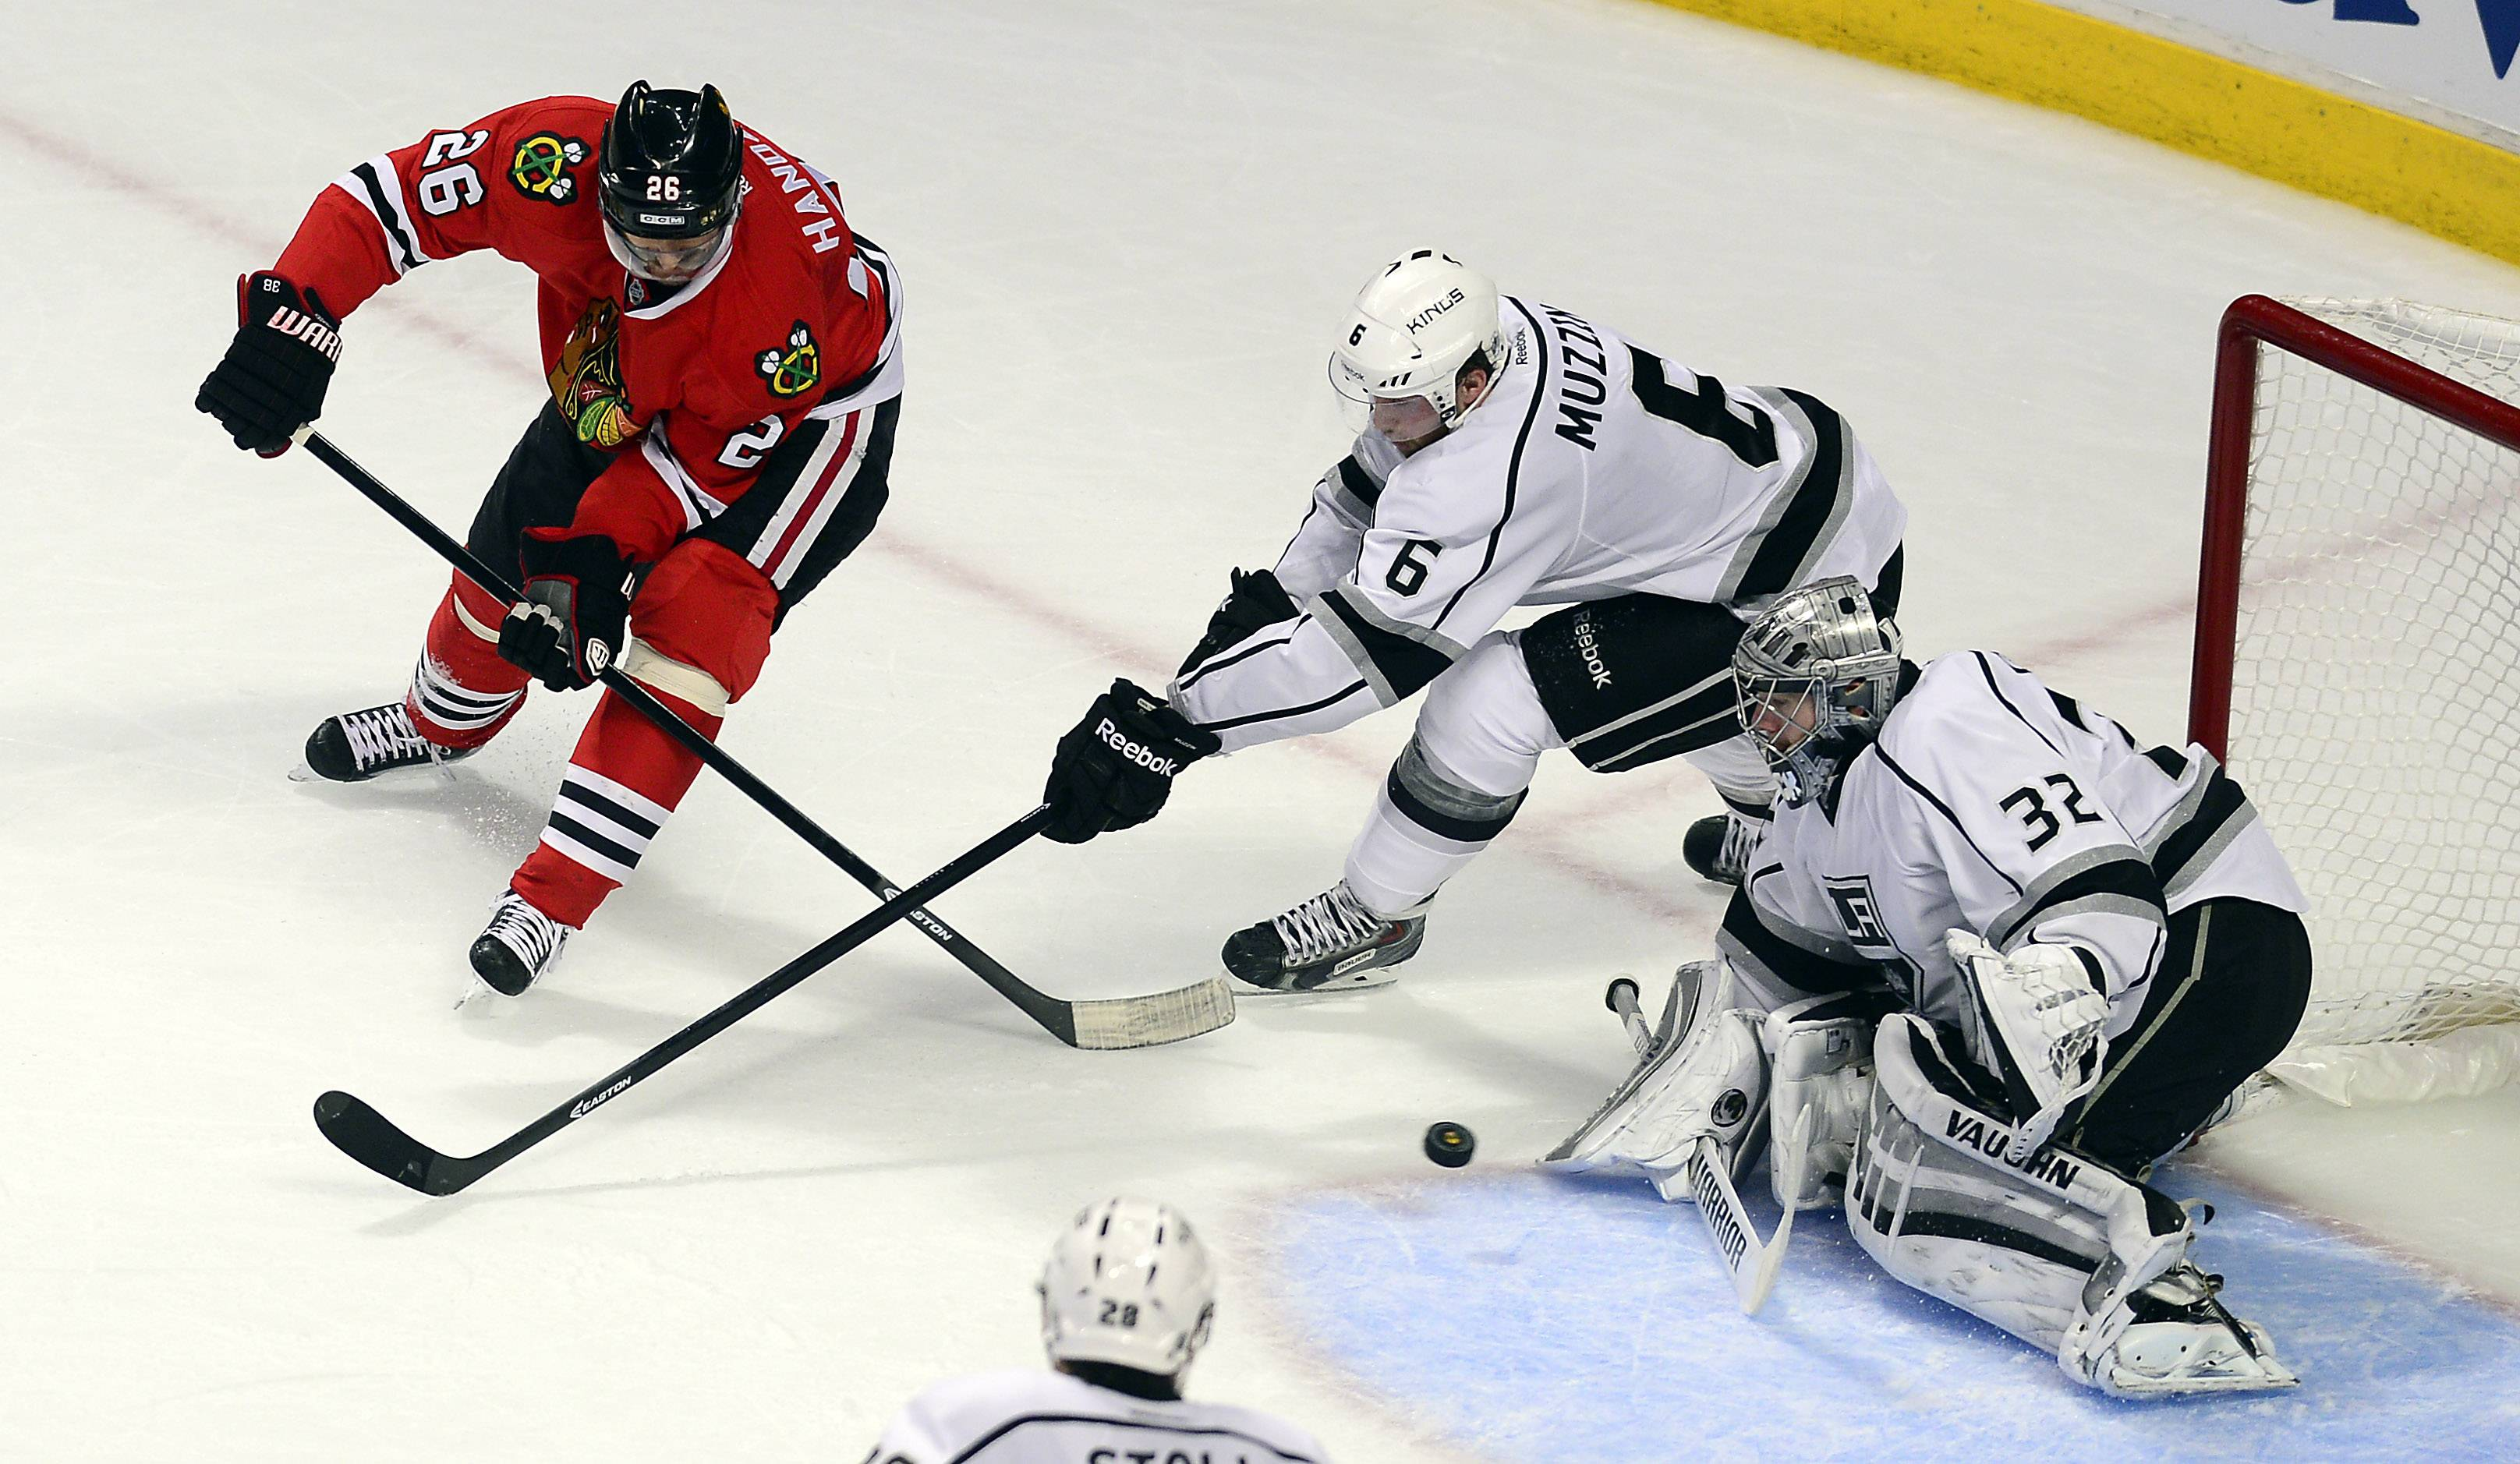 Kings stun Blackhawks with 6 unanswered goals